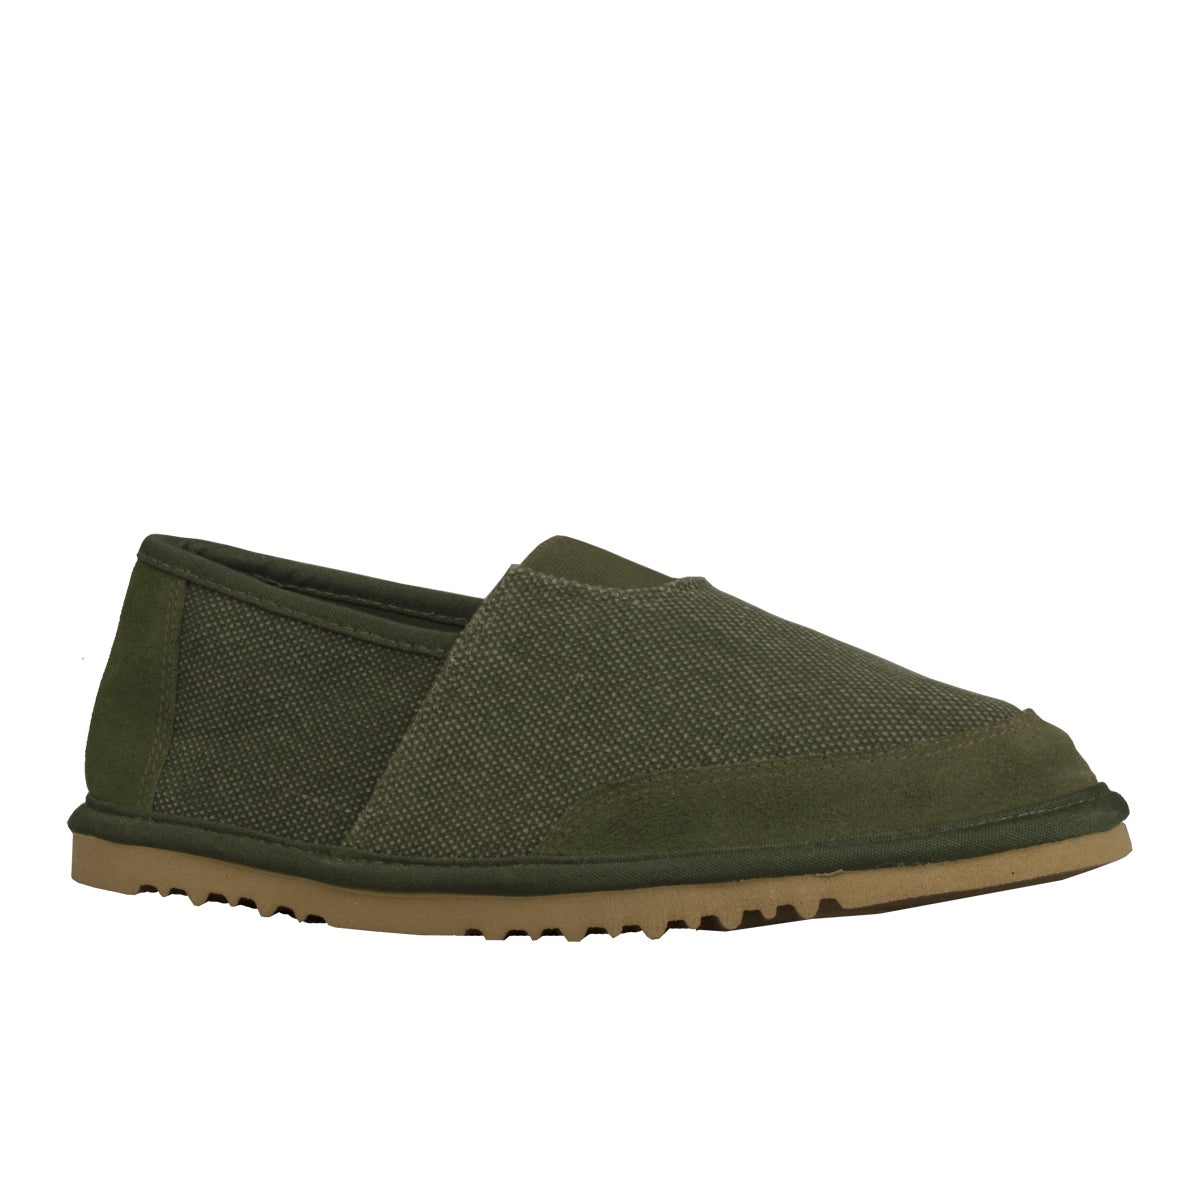 Lugz Men's 'Root' Canvas Suede Green Slip-on Shoes